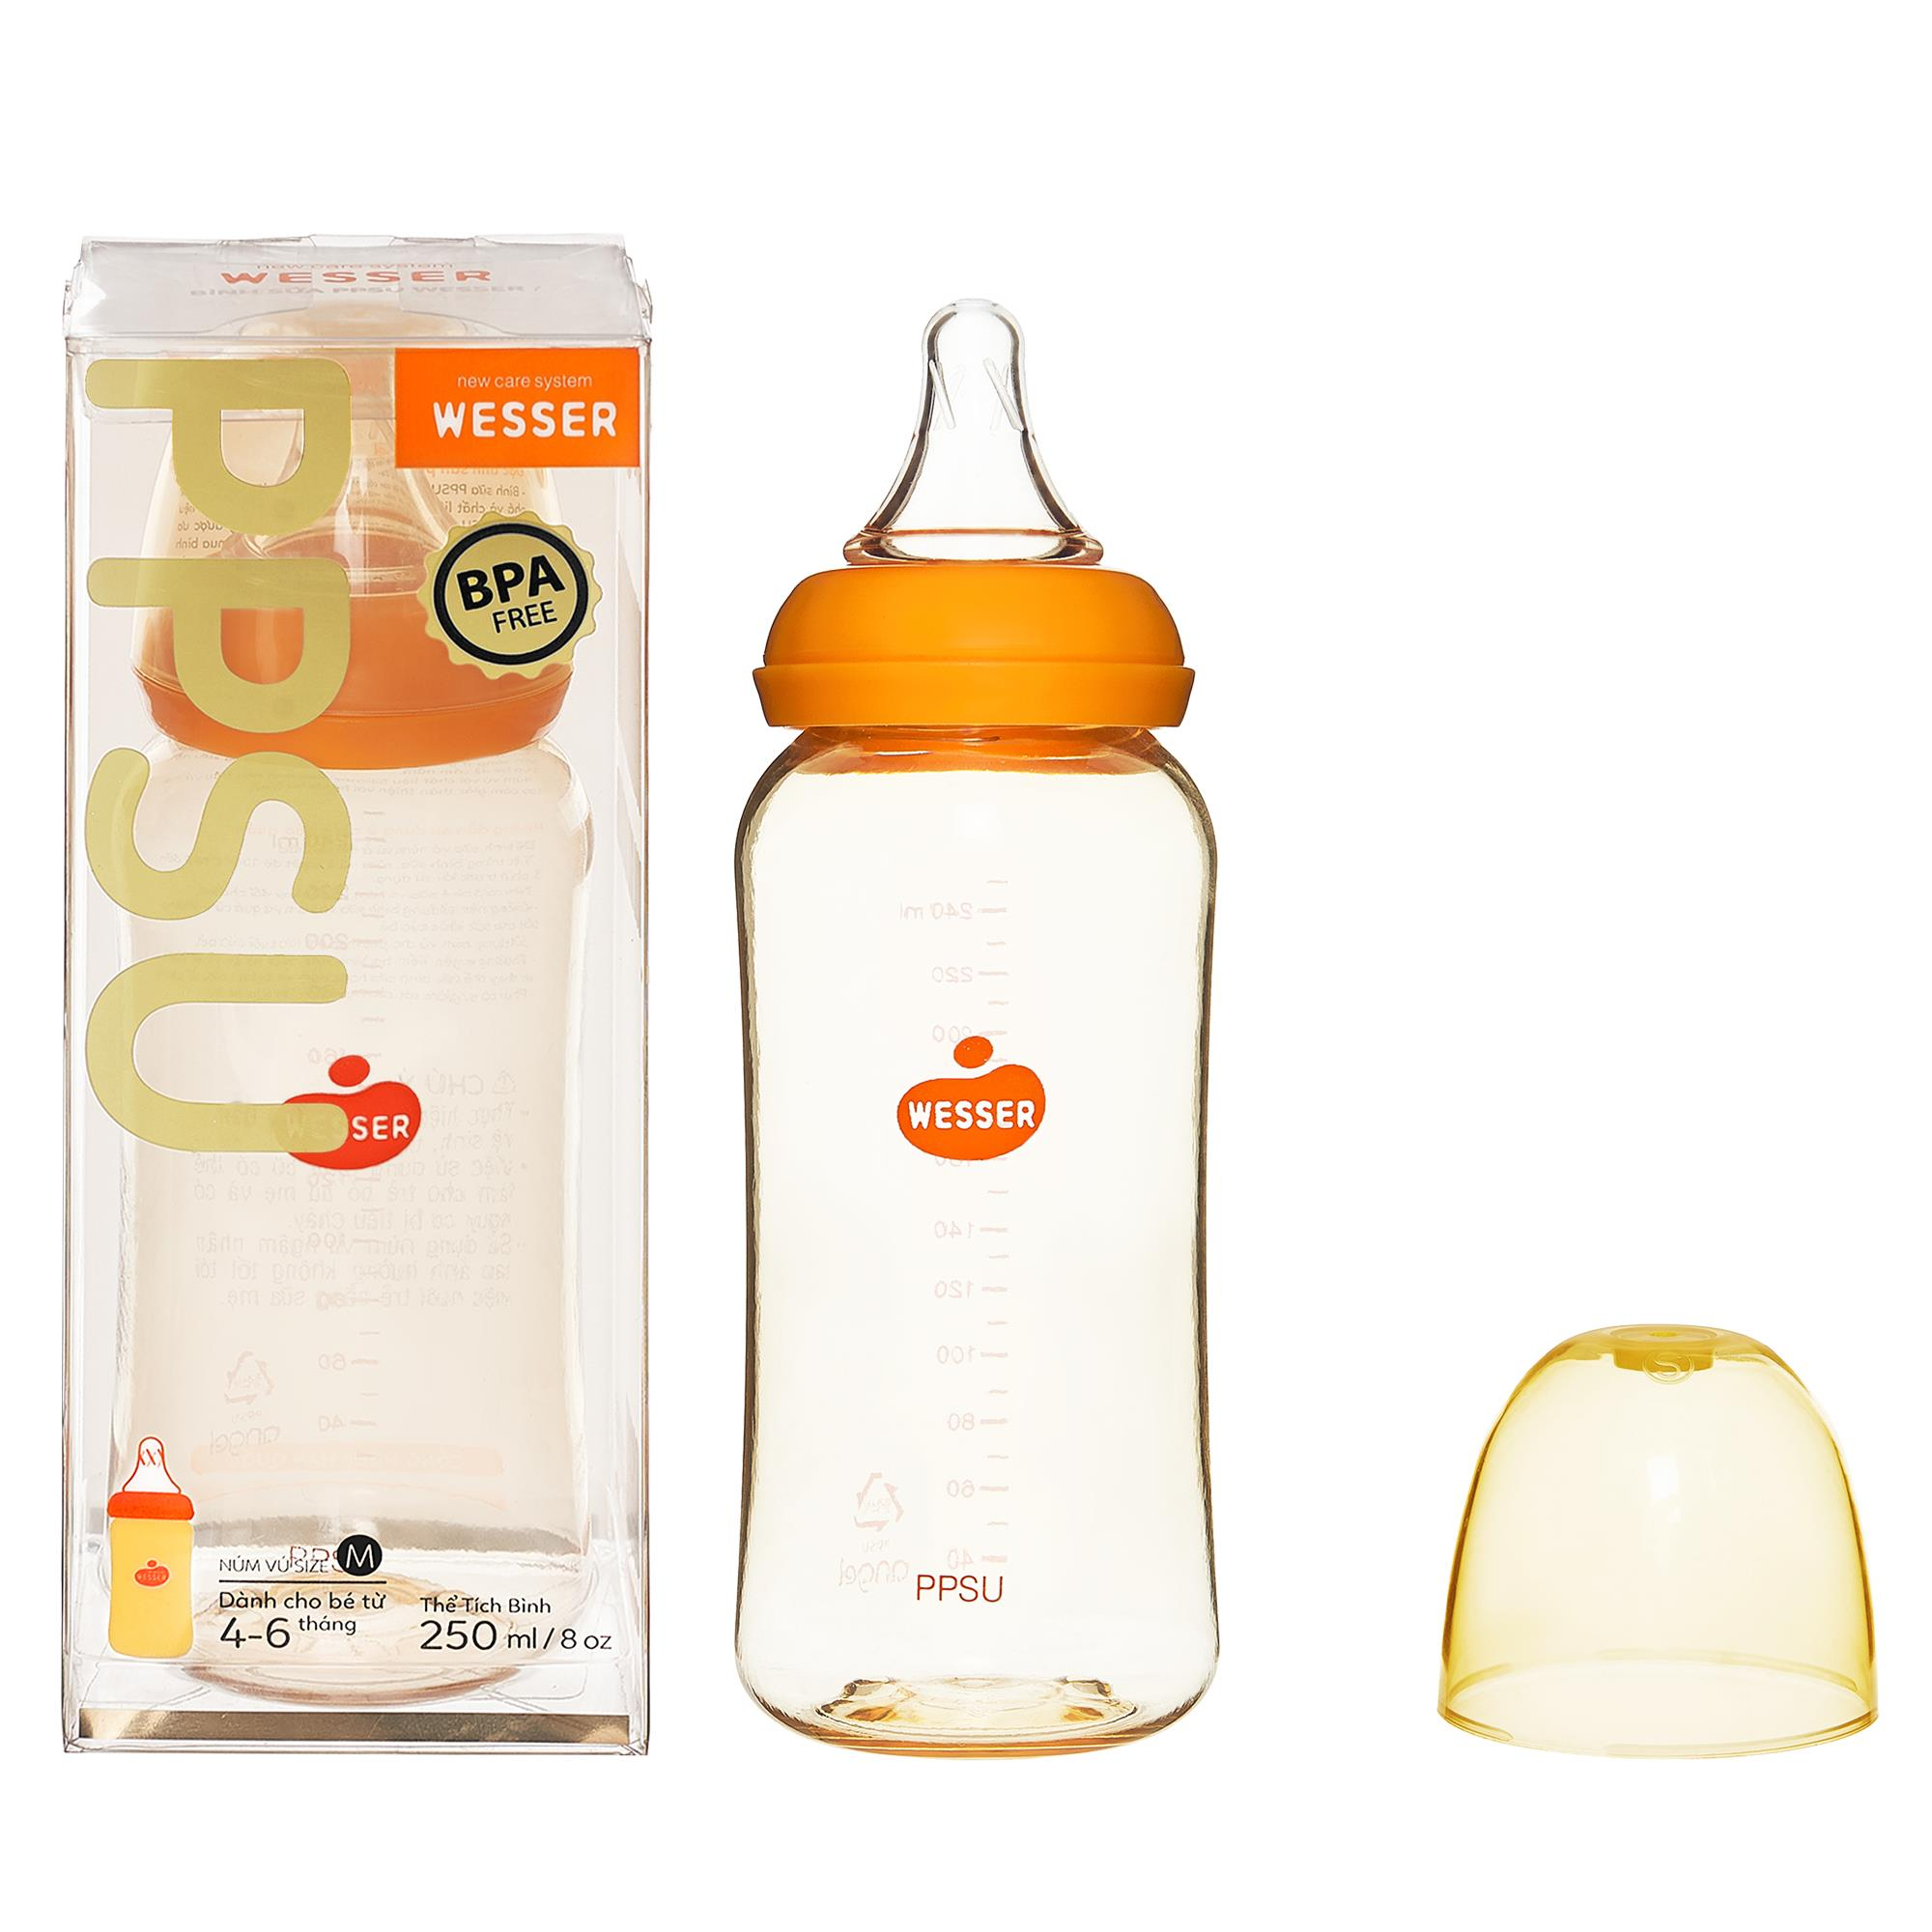 Wesser PPSU Feeding Bottle 250ml